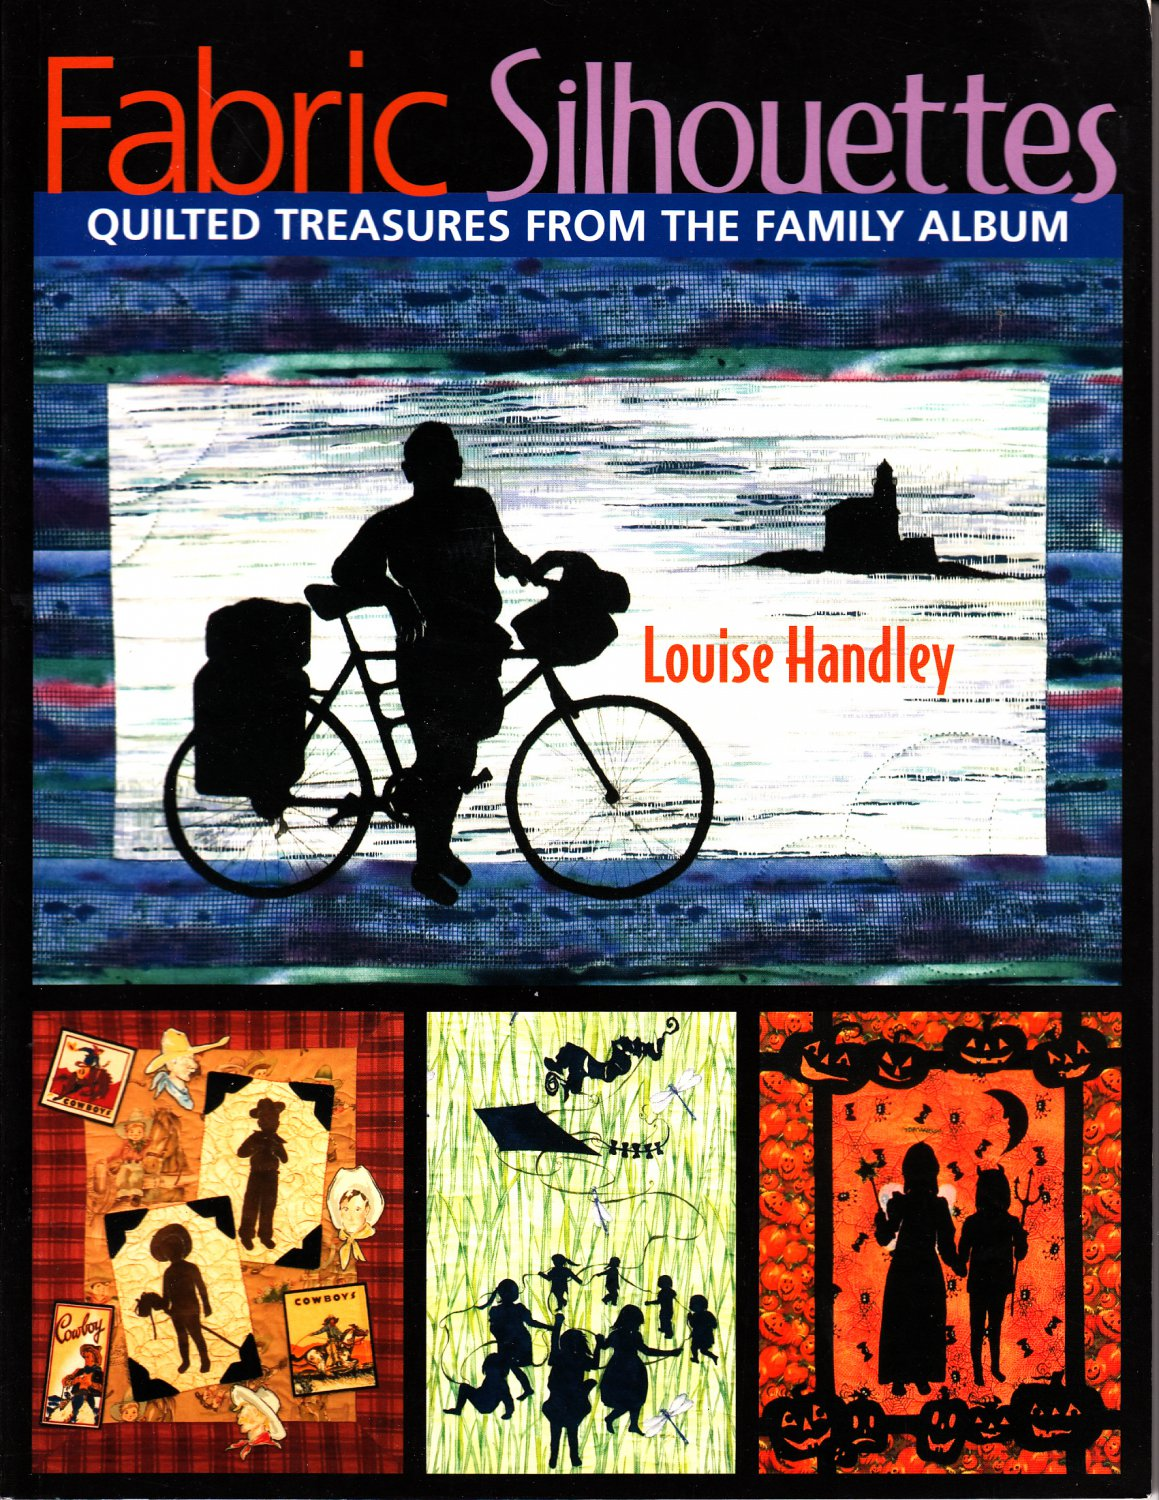 Fabric Silhouettes: Quilted Treasures from the Family Album by Louise Handley (2006)